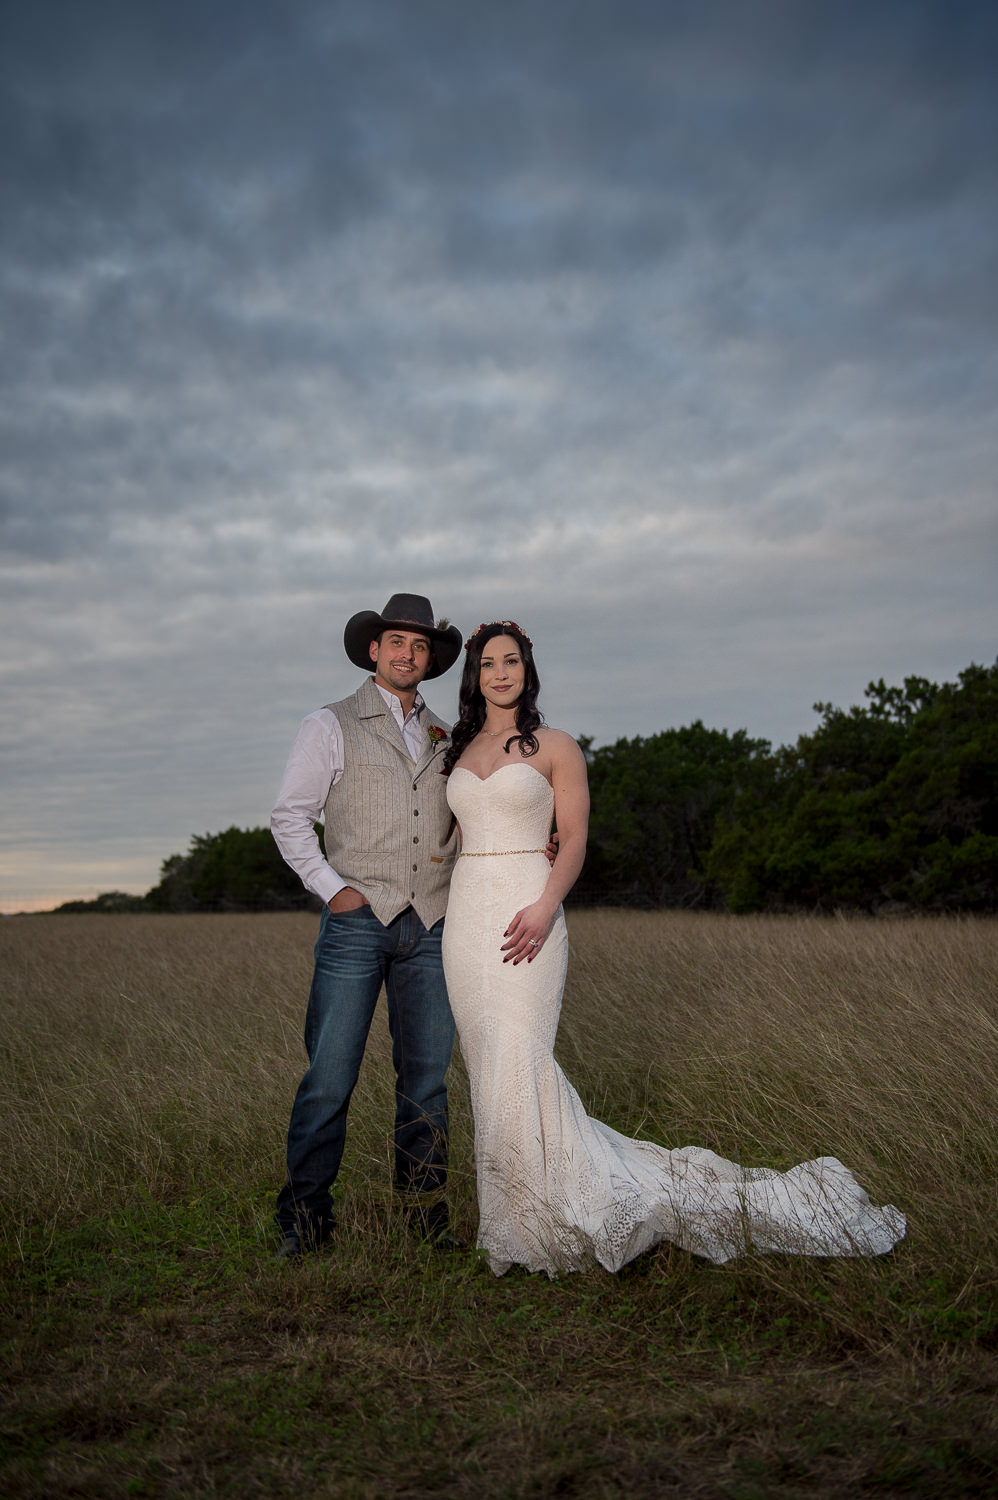 firefly-farm-hill-country-wedding-wimberley-texas-_4S26729